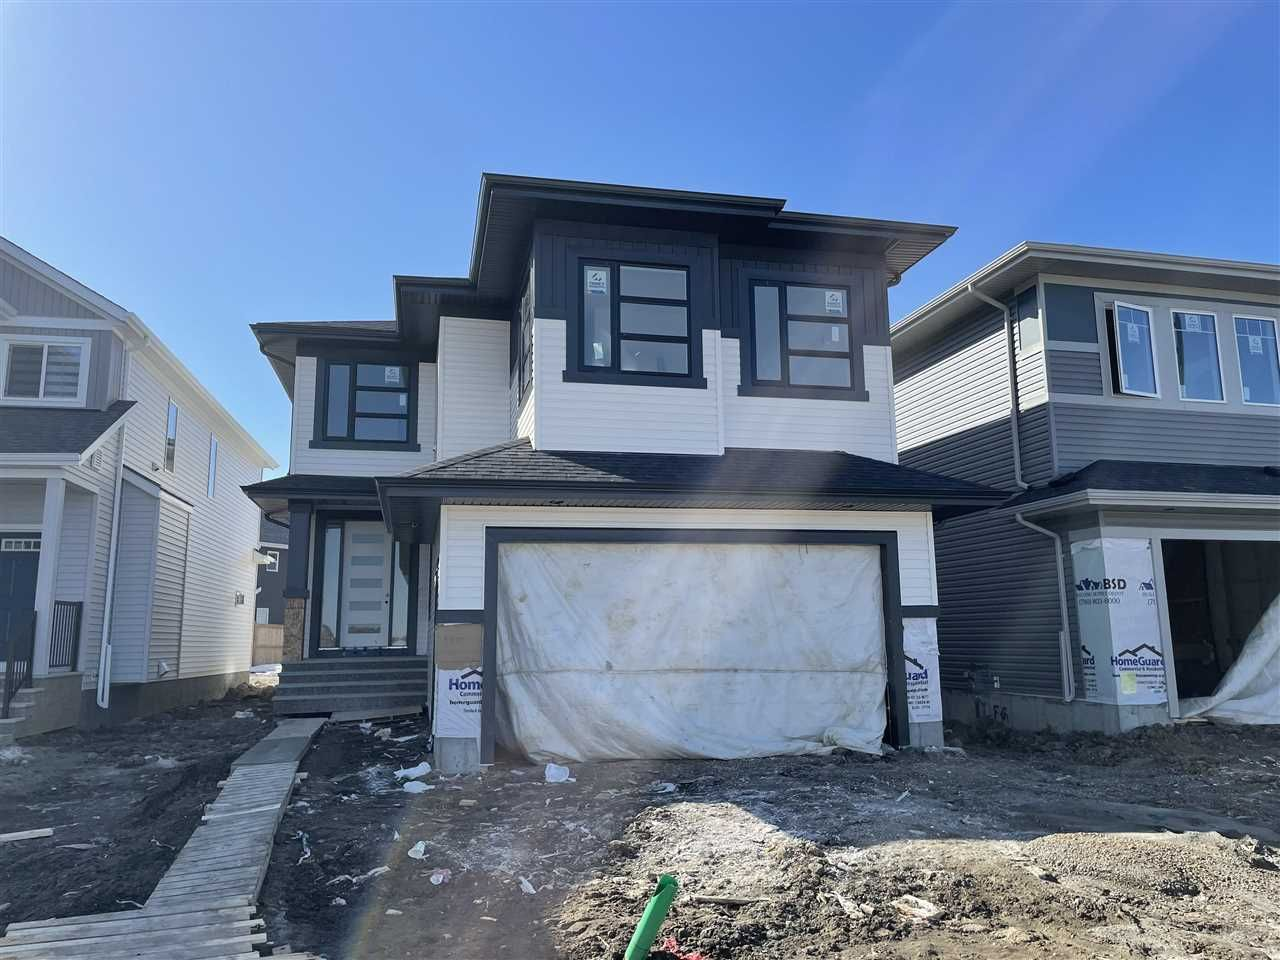 Main Photo: 830 CRYSTALLINA NERA Way in Edmonton: Zone 28 House for sale : MLS®# E4233271